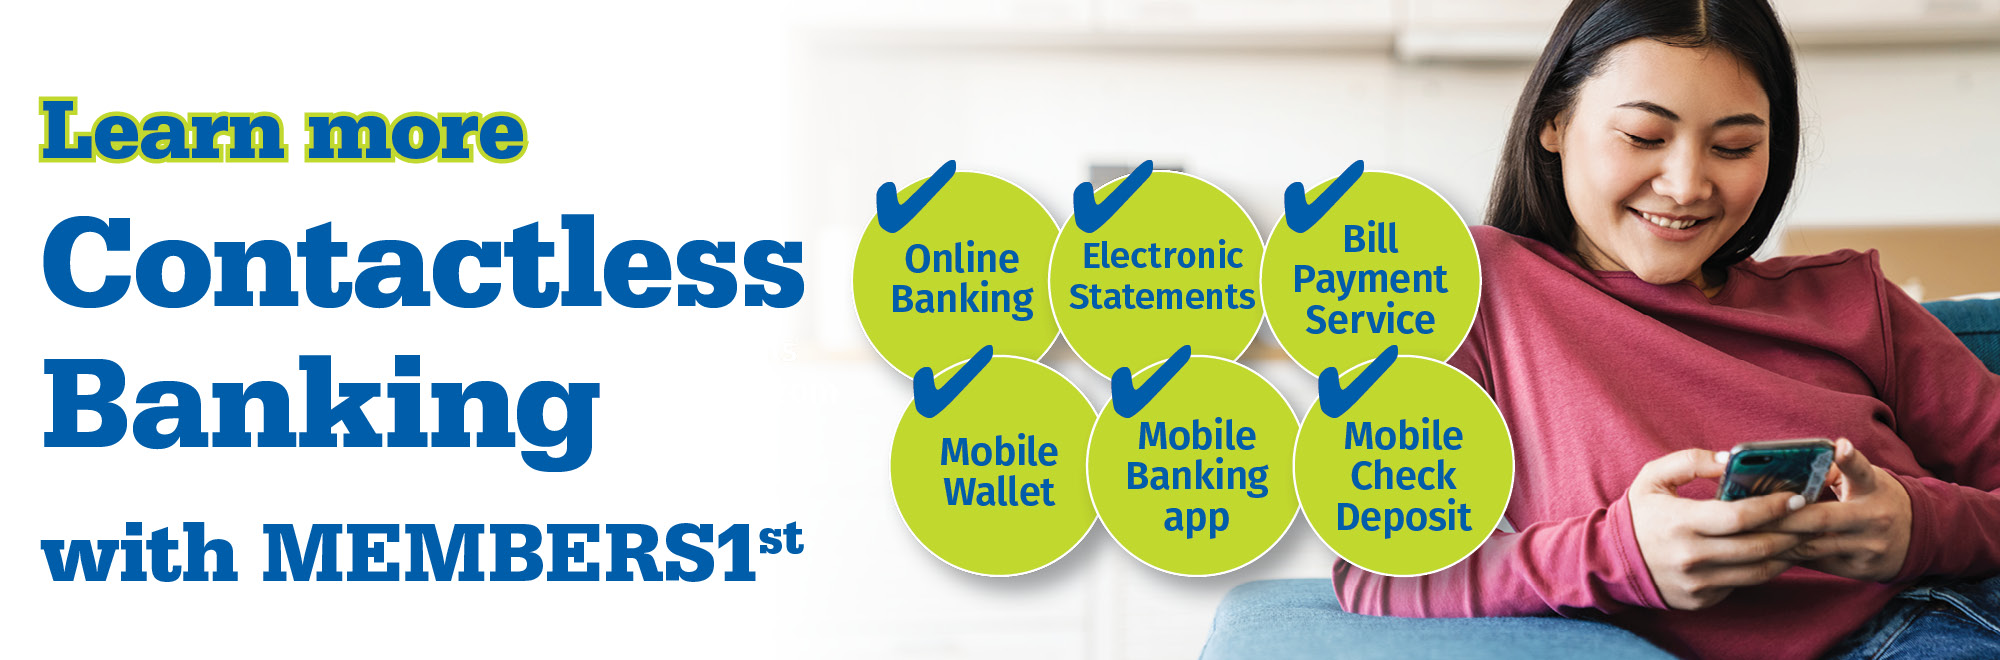 Enjoy Contactless Banking with MEMBERS1st! Options include Online Banking, Mobile Wallet, Electronic Statements, Mobile Banking App, Bill Payment Service, Mobile Check Deposit